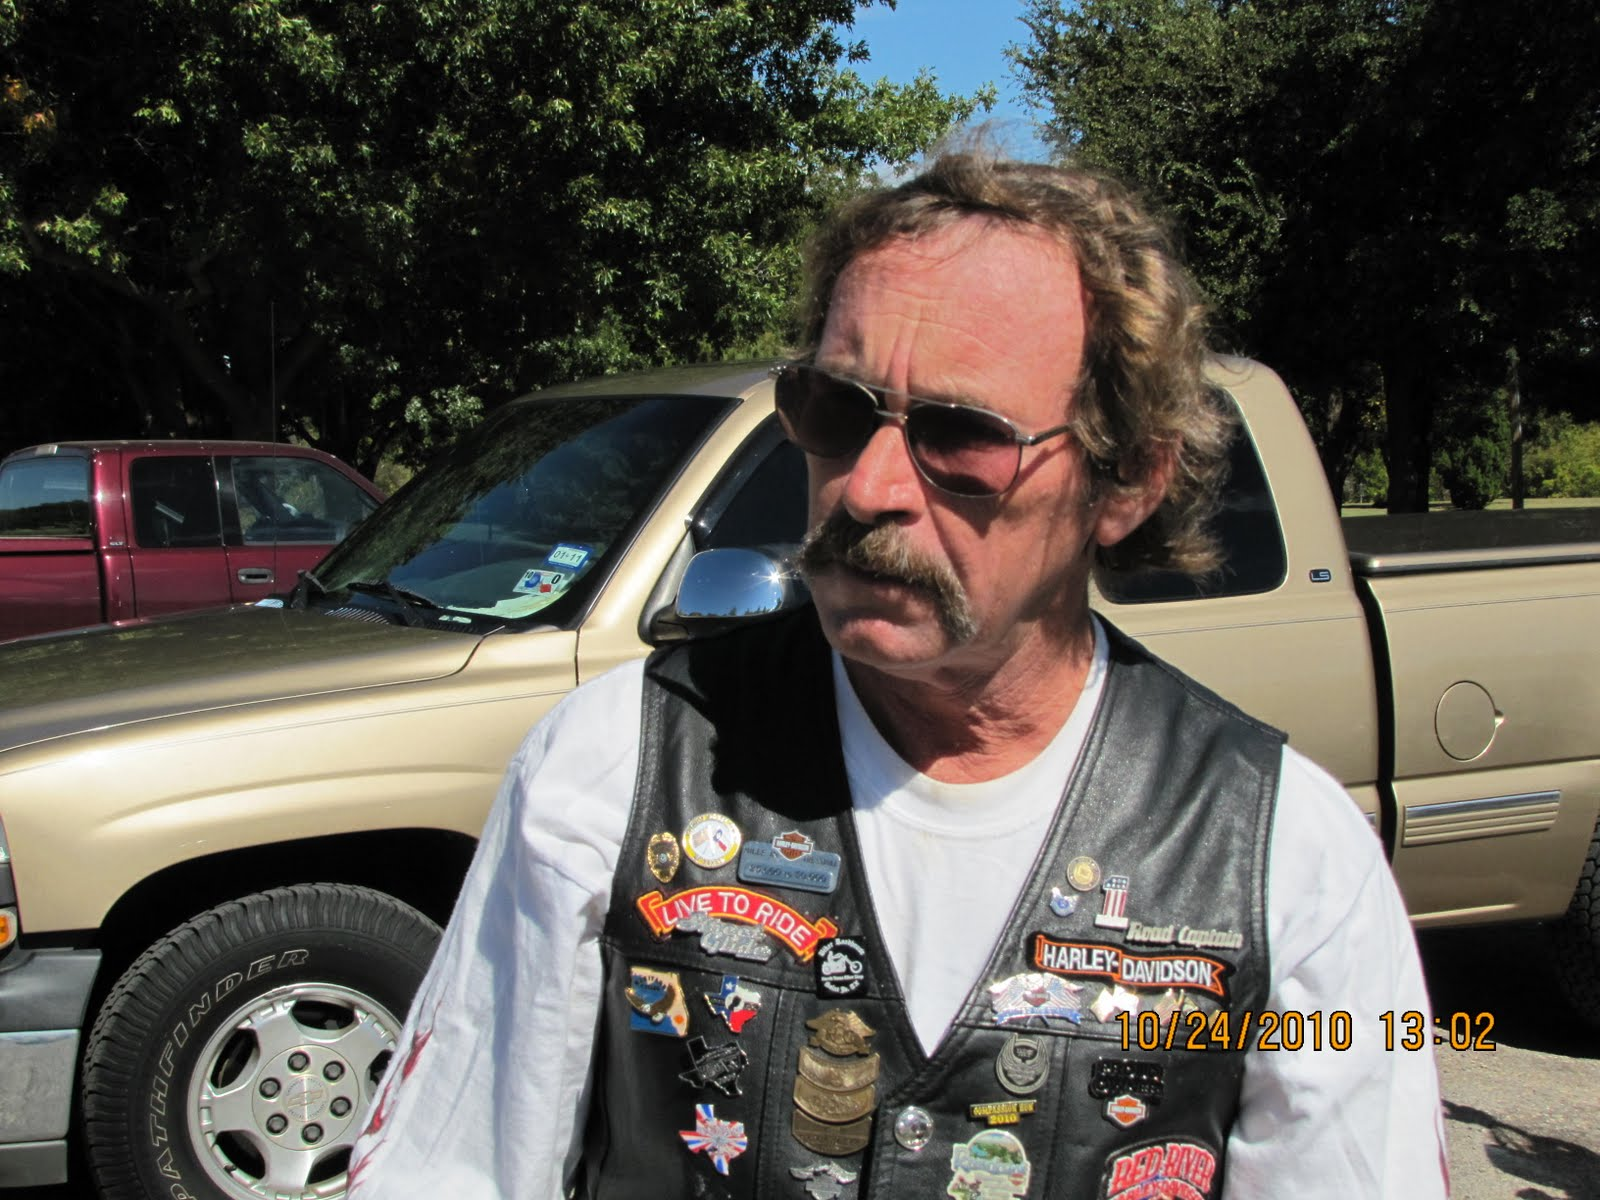 NORTH TEXAS BIKERS IV: PGR MEET & GREET WICHITA FALLS TEXAS 10-